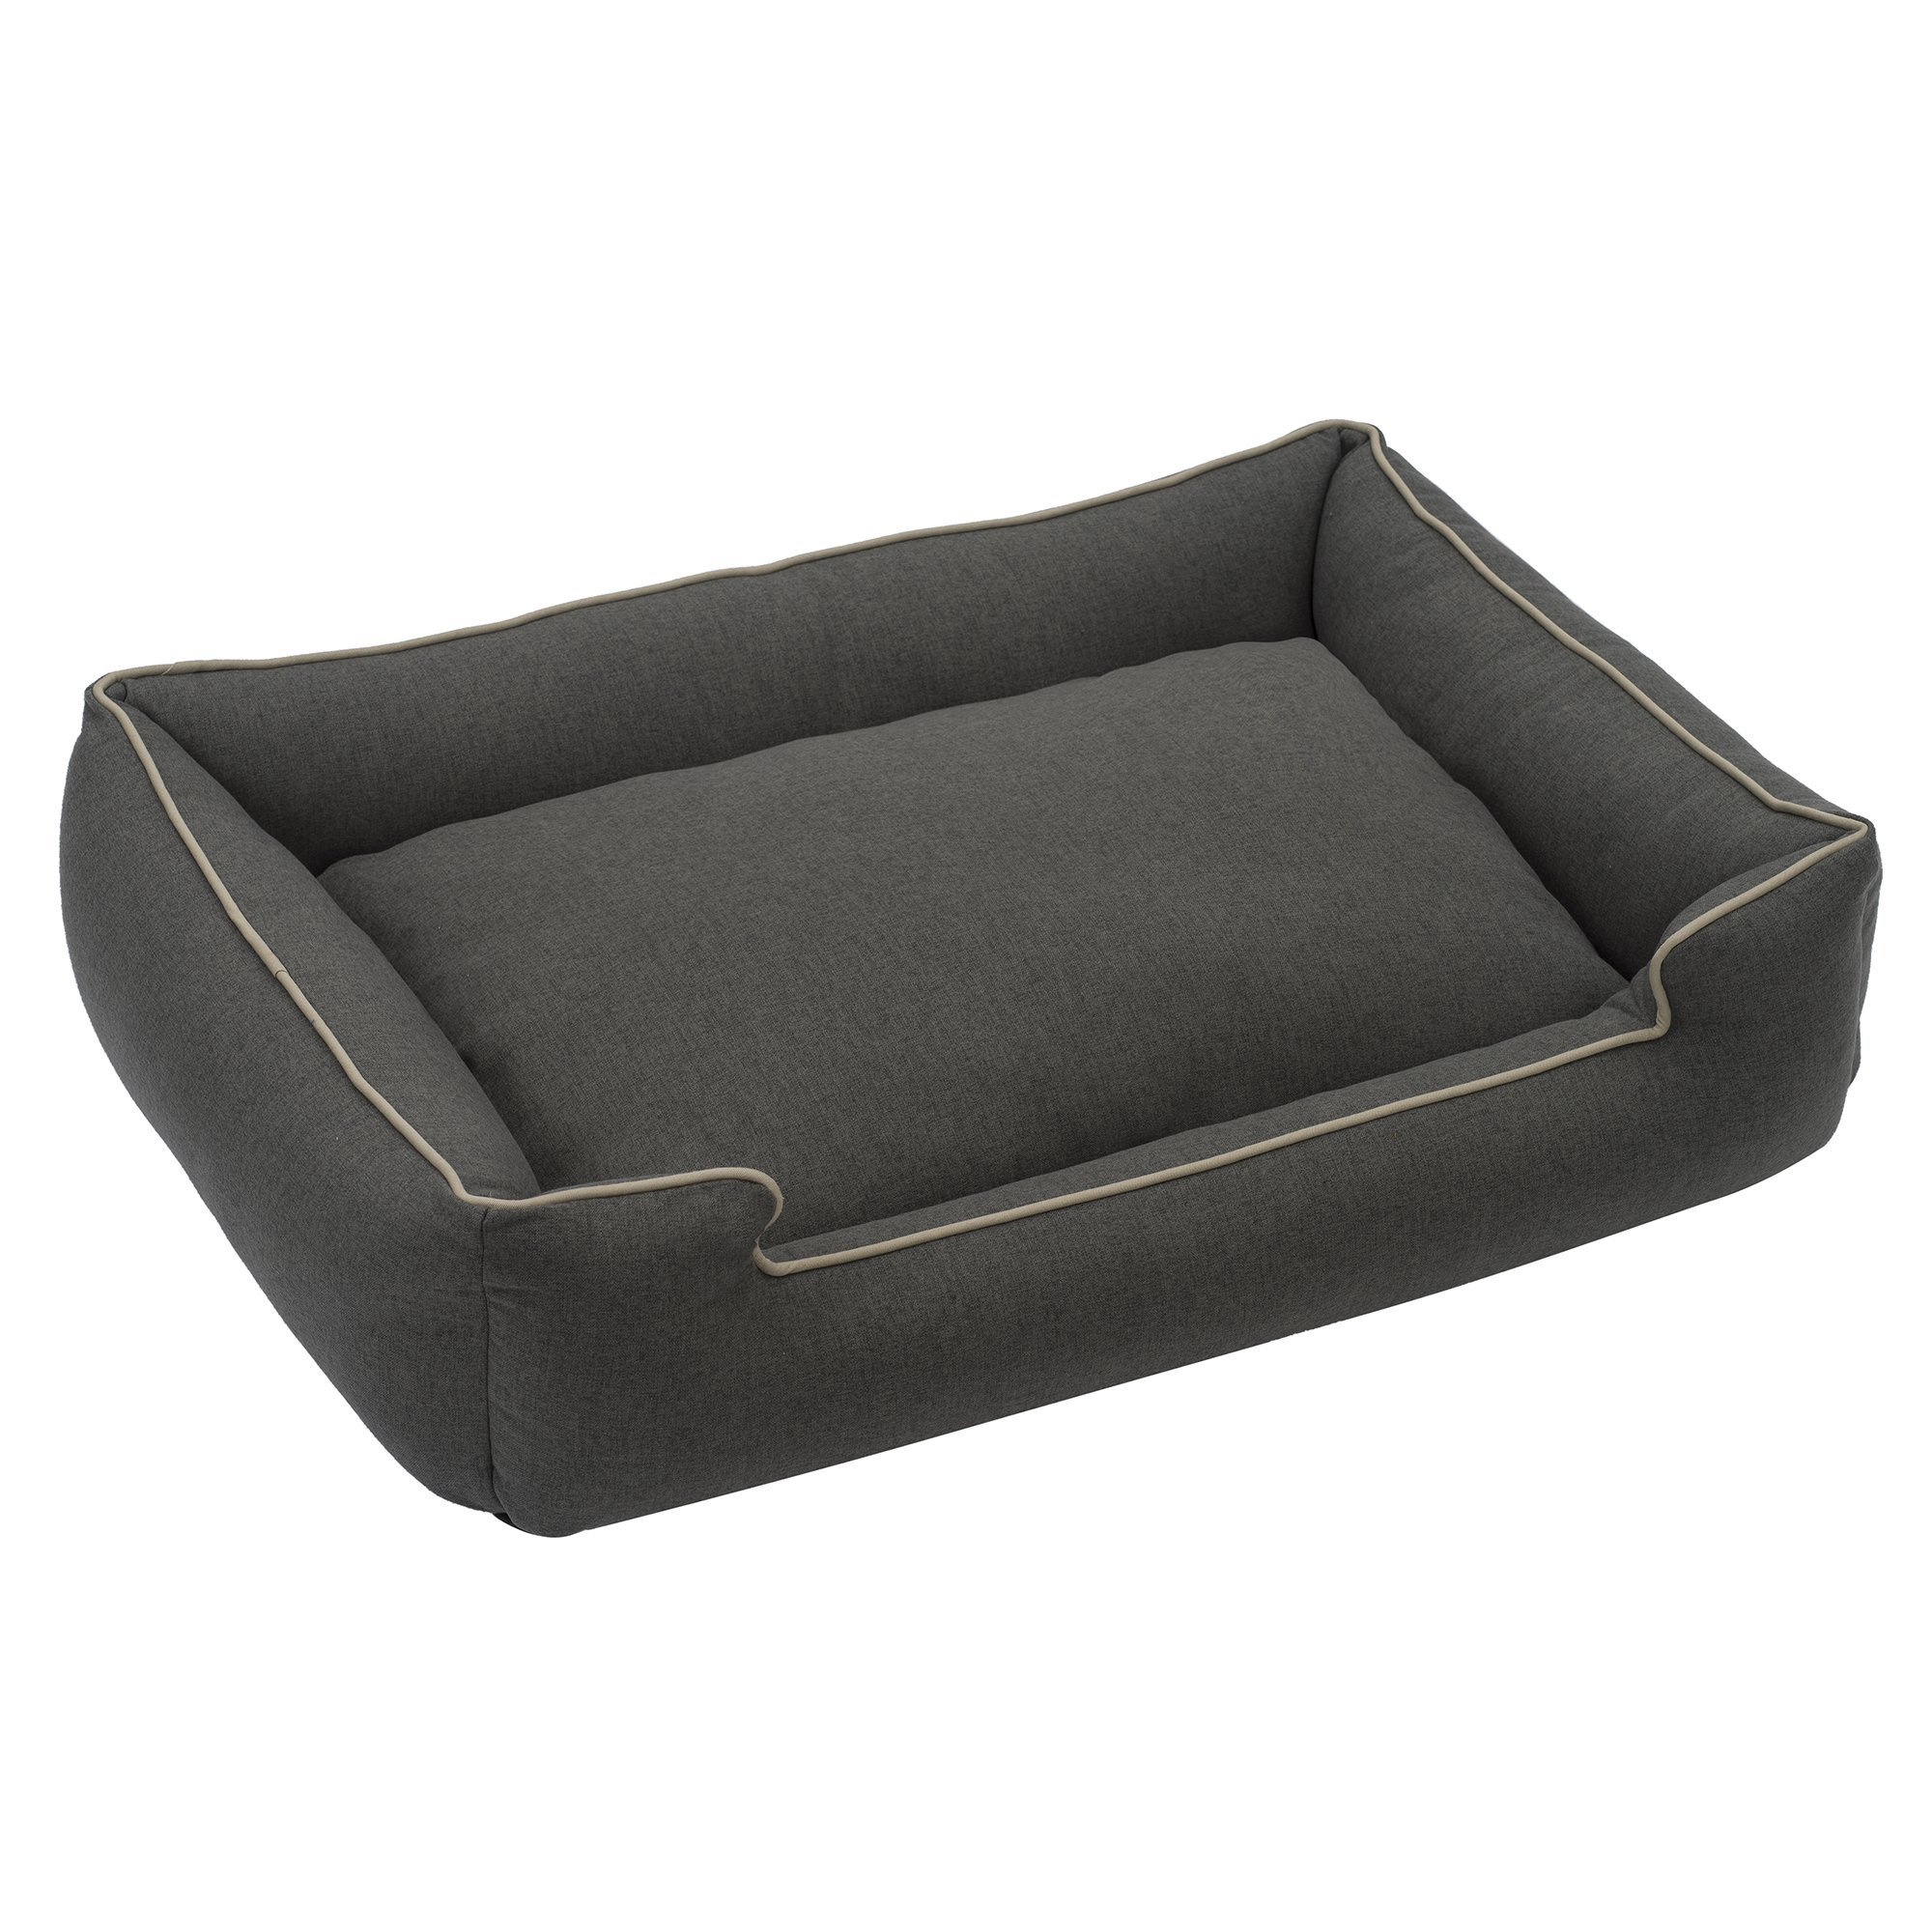 Jax and Bones Licorice Standard Wool Blend Lounge Dog Bed, Large